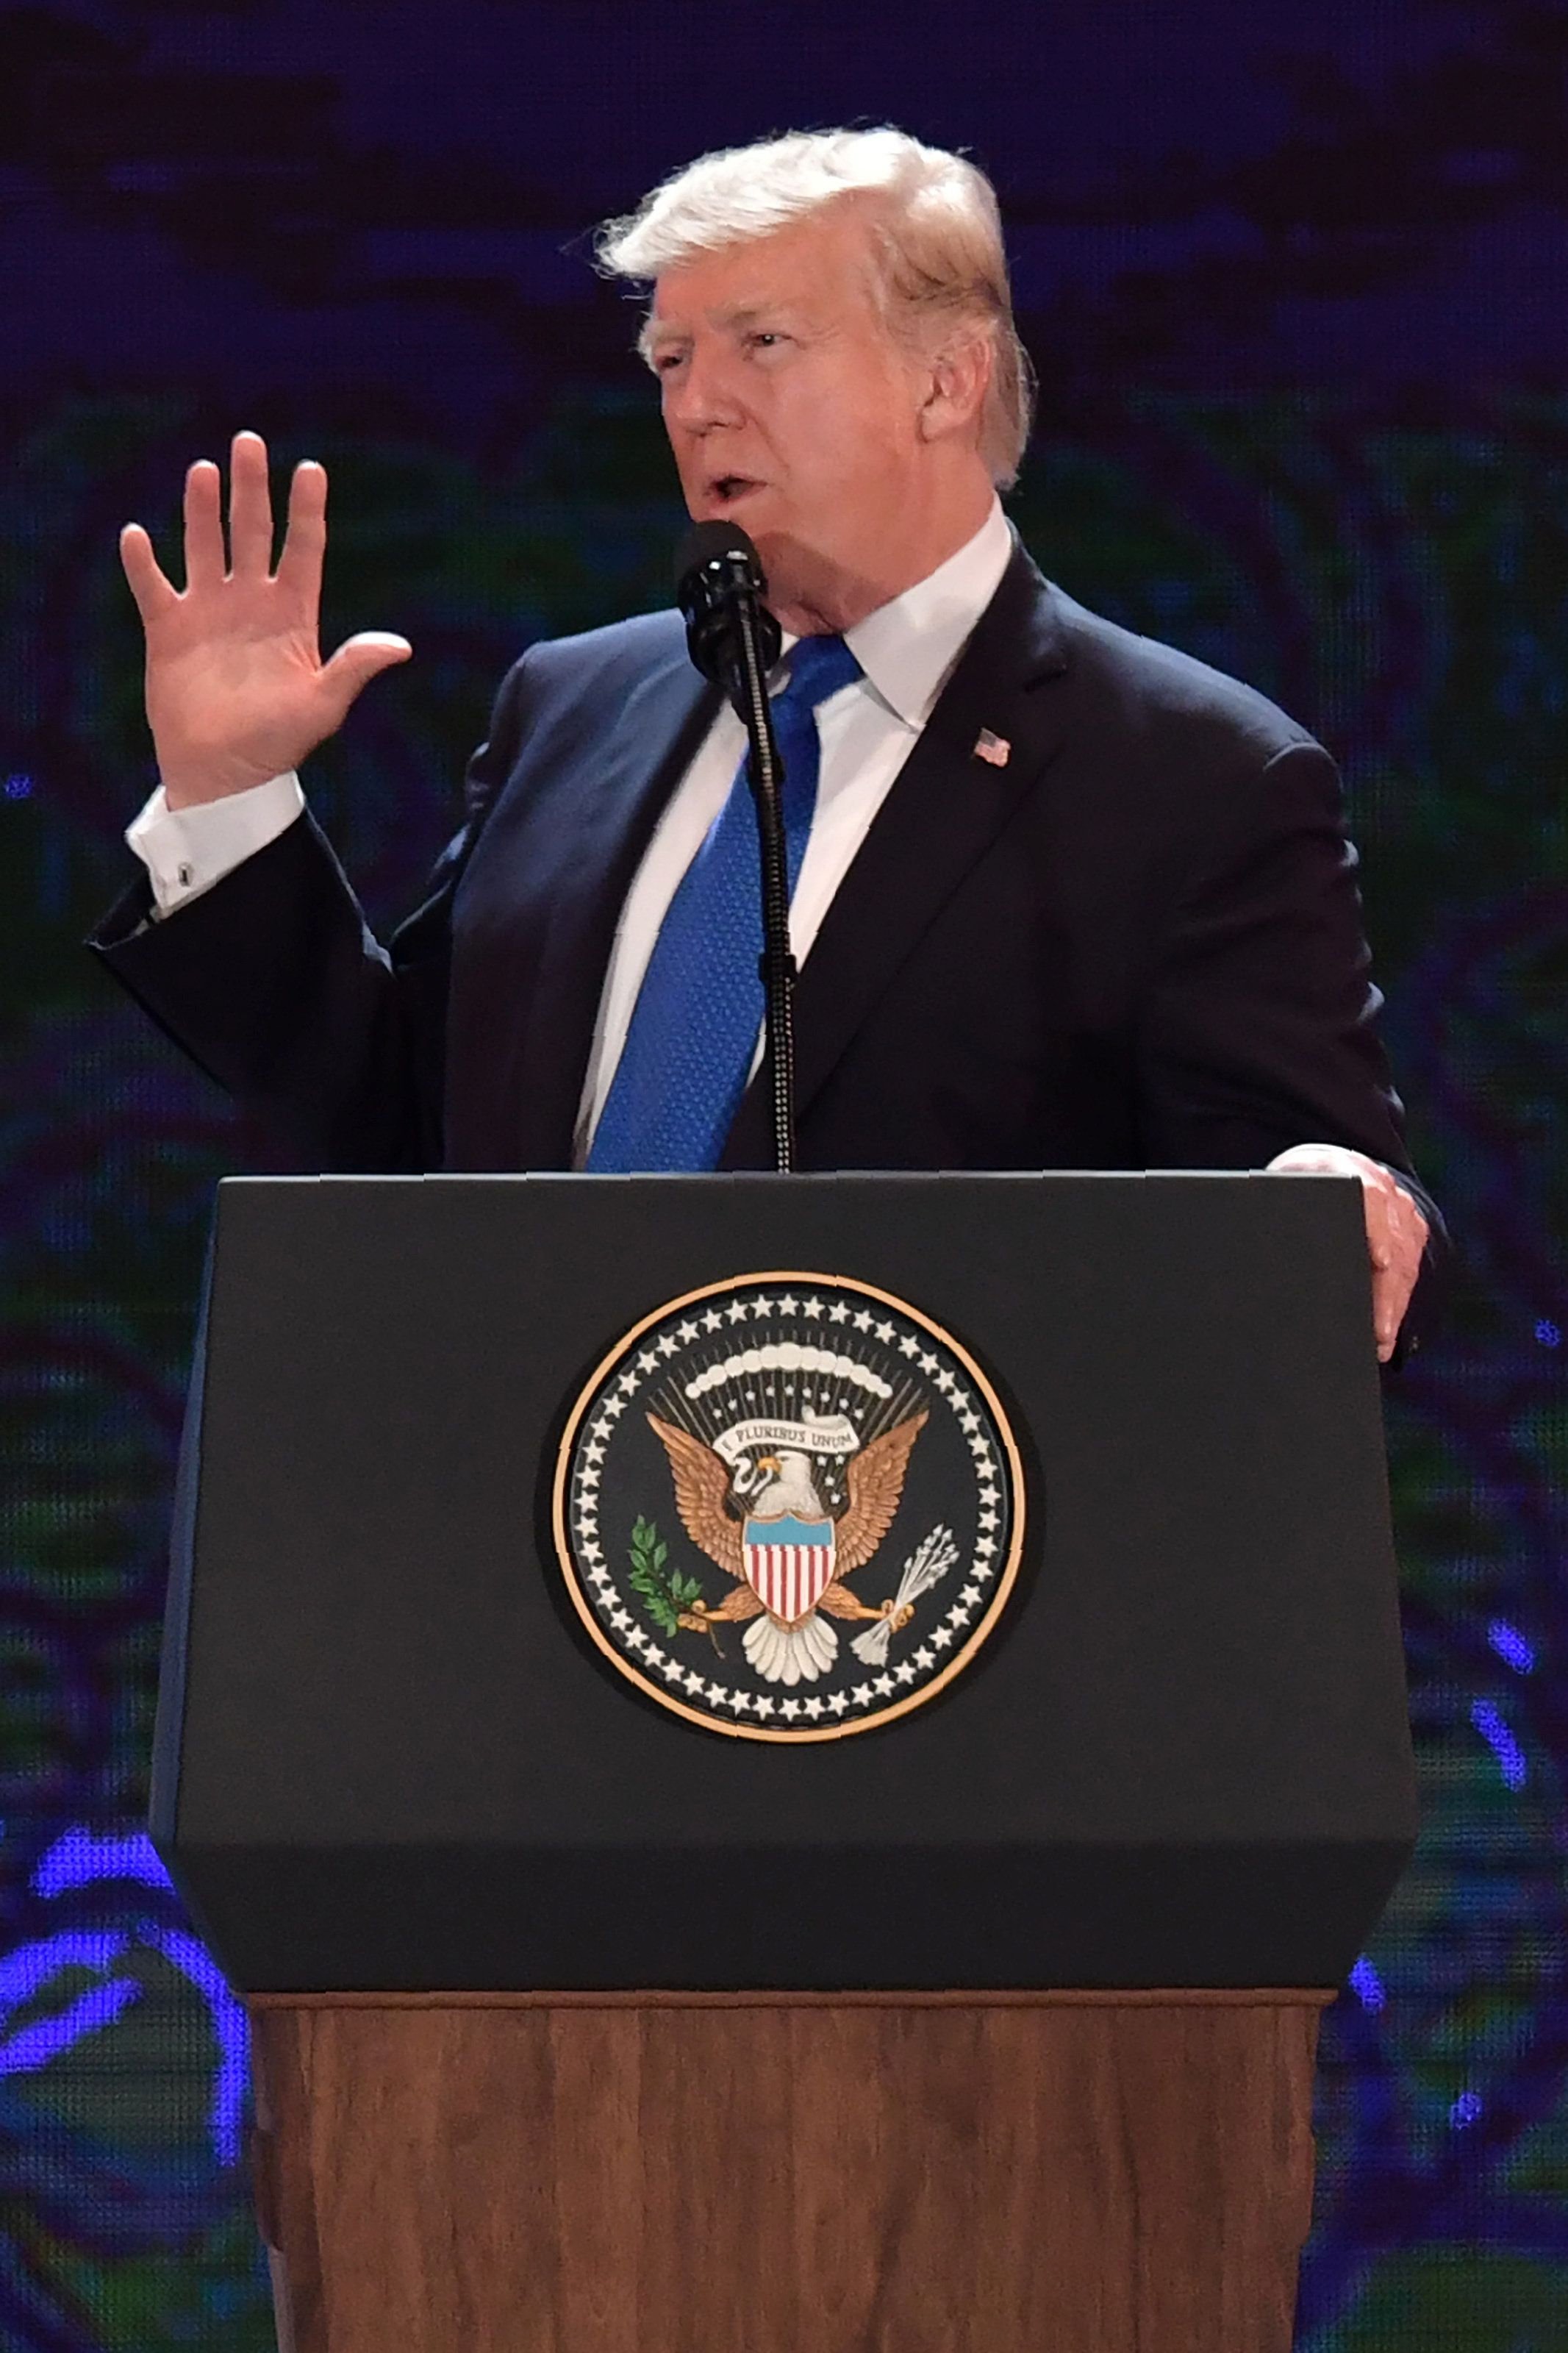 U.S. President Donald Trump speaks on the final day of the APEC CEO Summit, part of the broader Asia-Pacific Economic Cooperation (APEC) leaders' summit, in Danang, Vietnam, November 10, 2017. REUTERS/Anthony Wallace/Pool